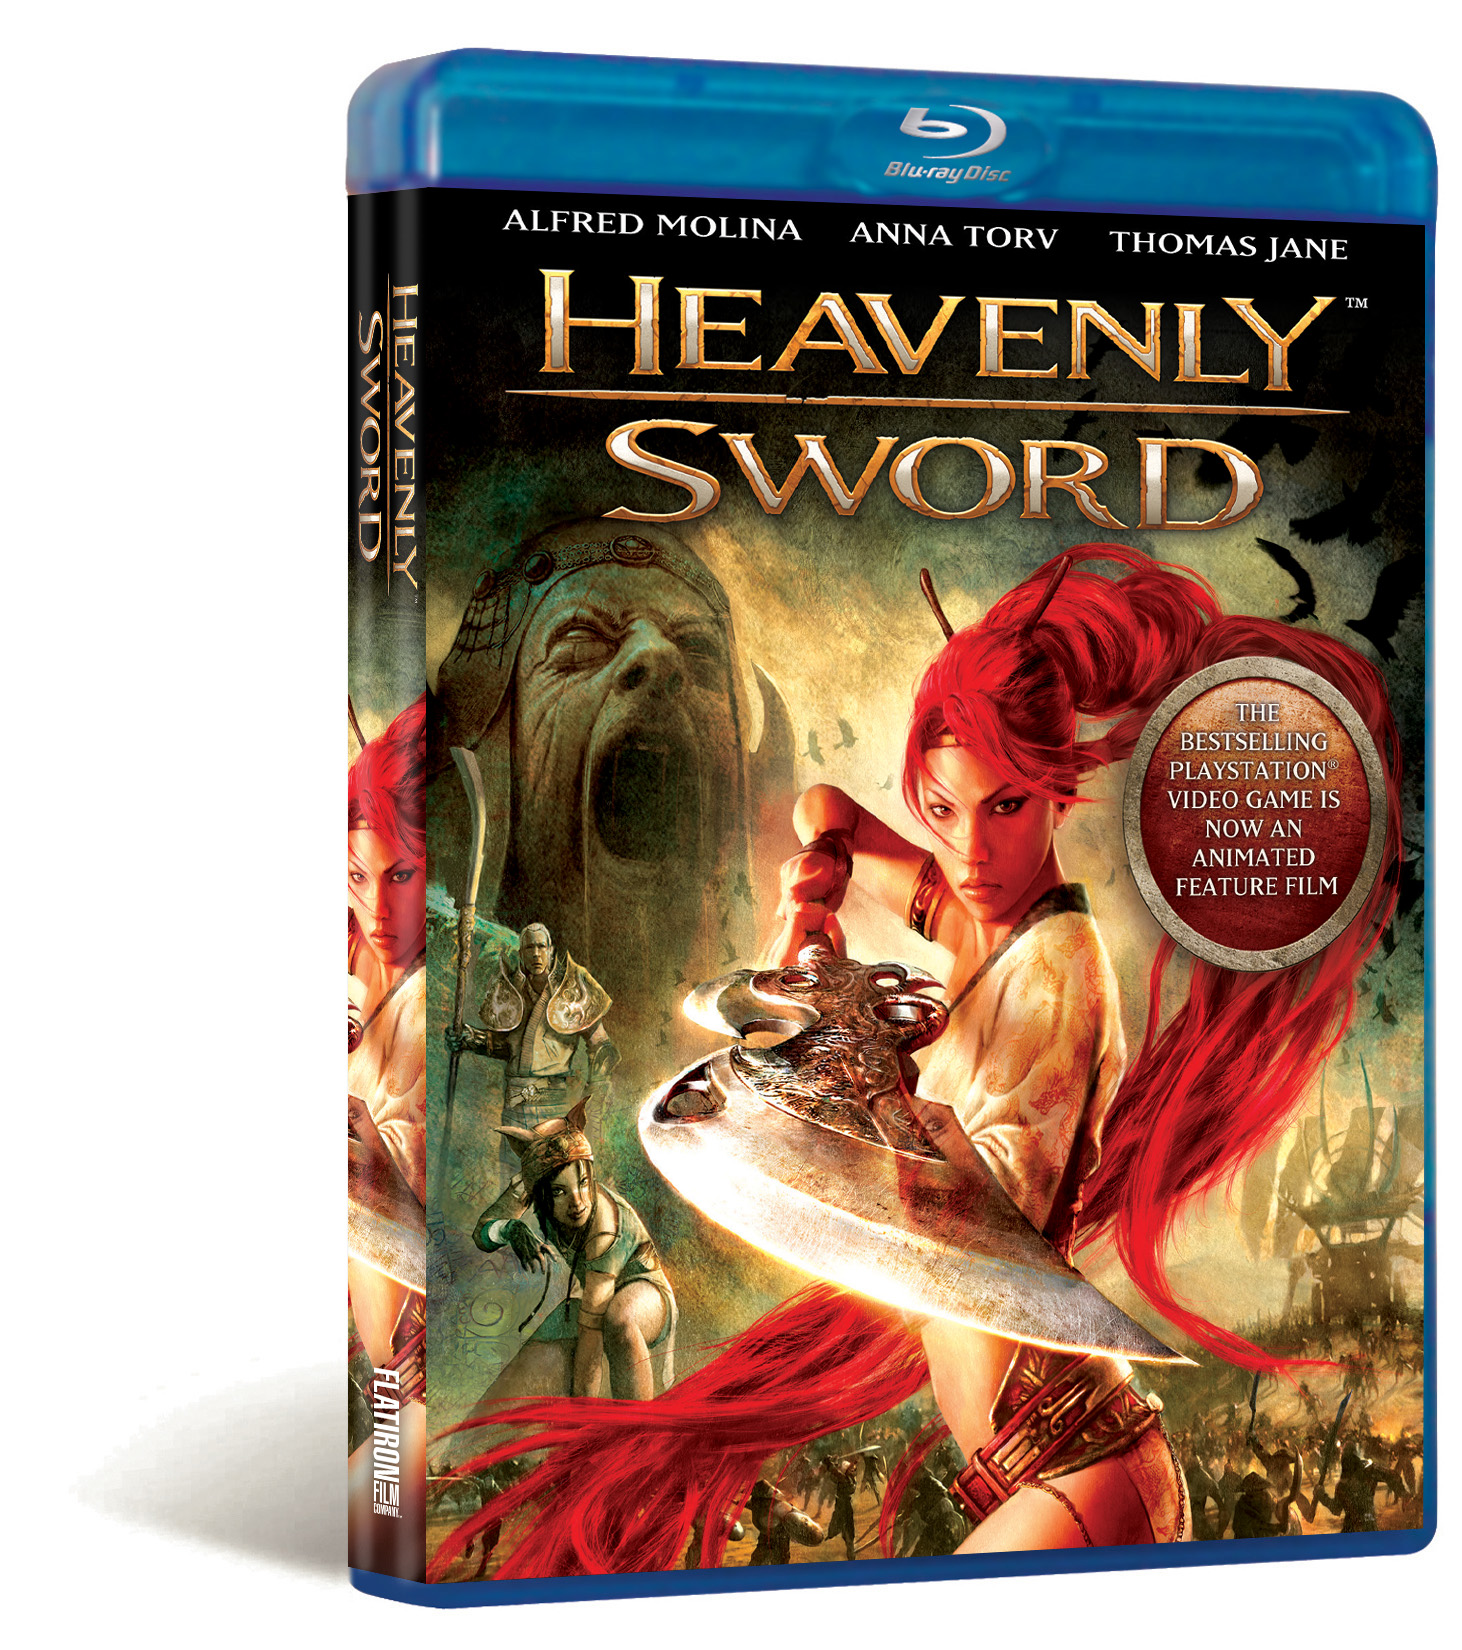 ps3 game heavenly sword